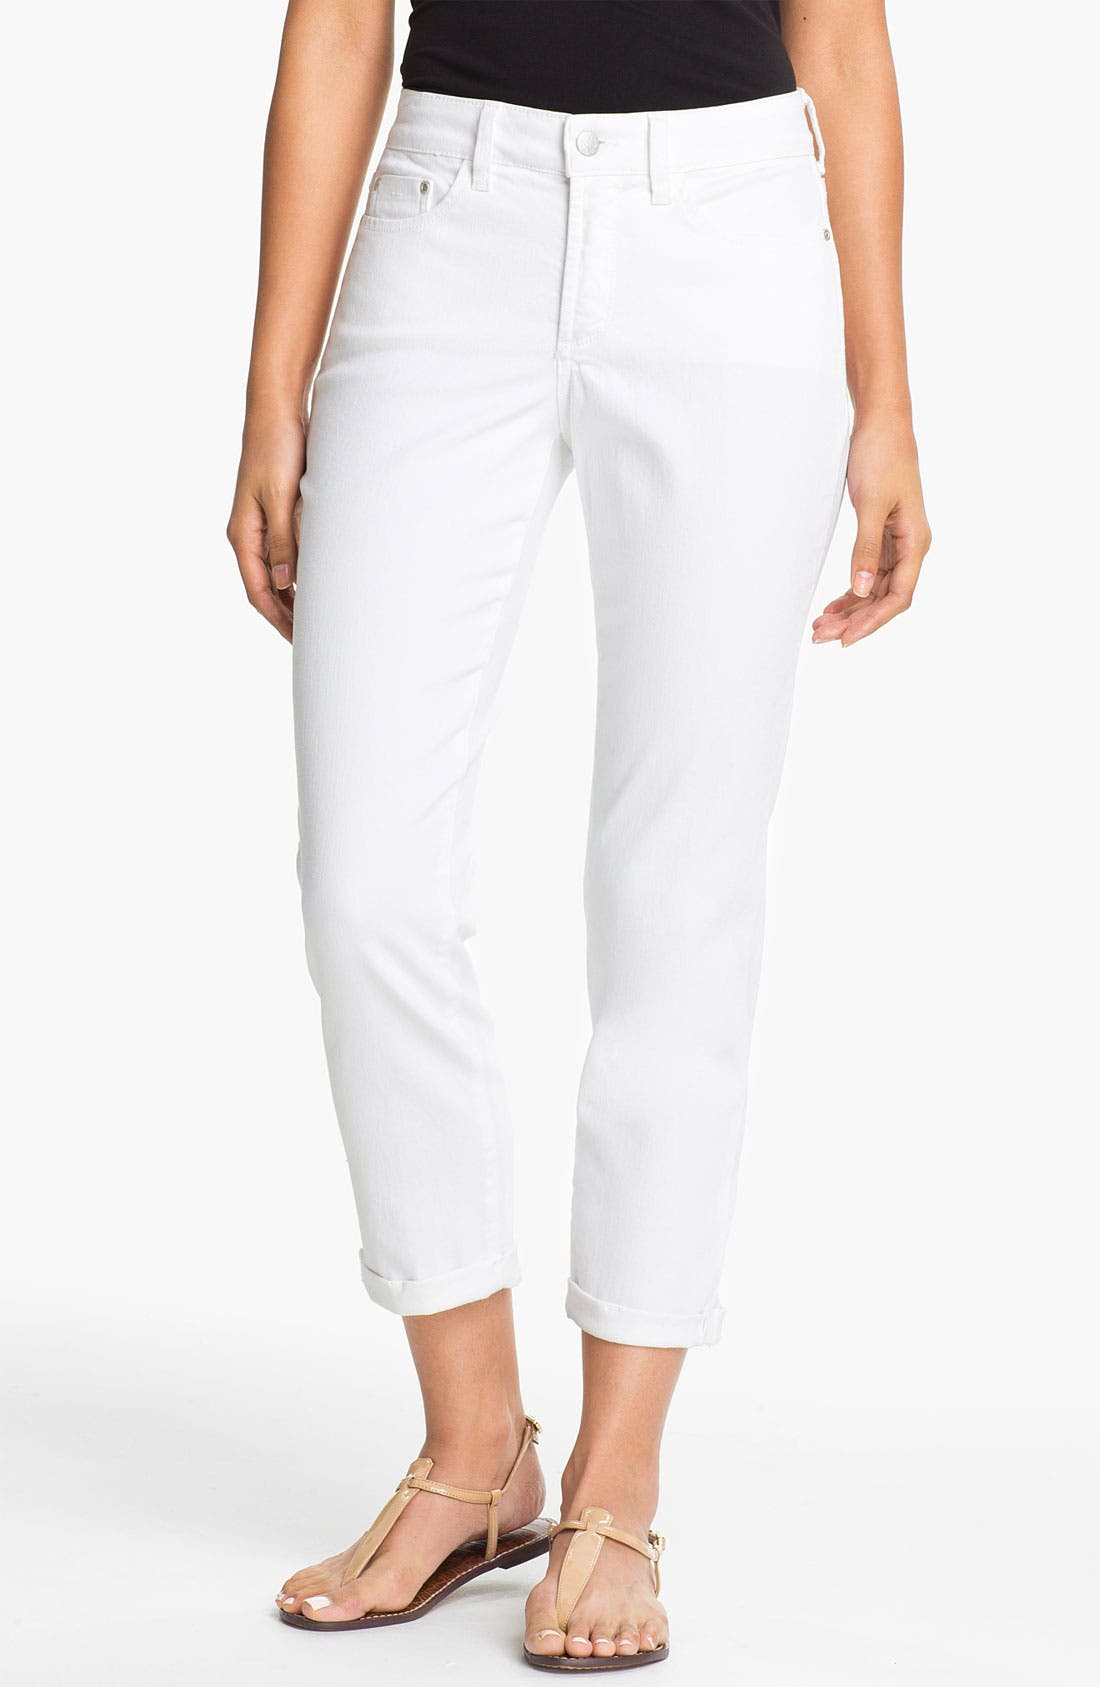 Alternate Image 1 Selected - NYDJ 'Kendall' Roll Cuff Stretch Crop Jeans